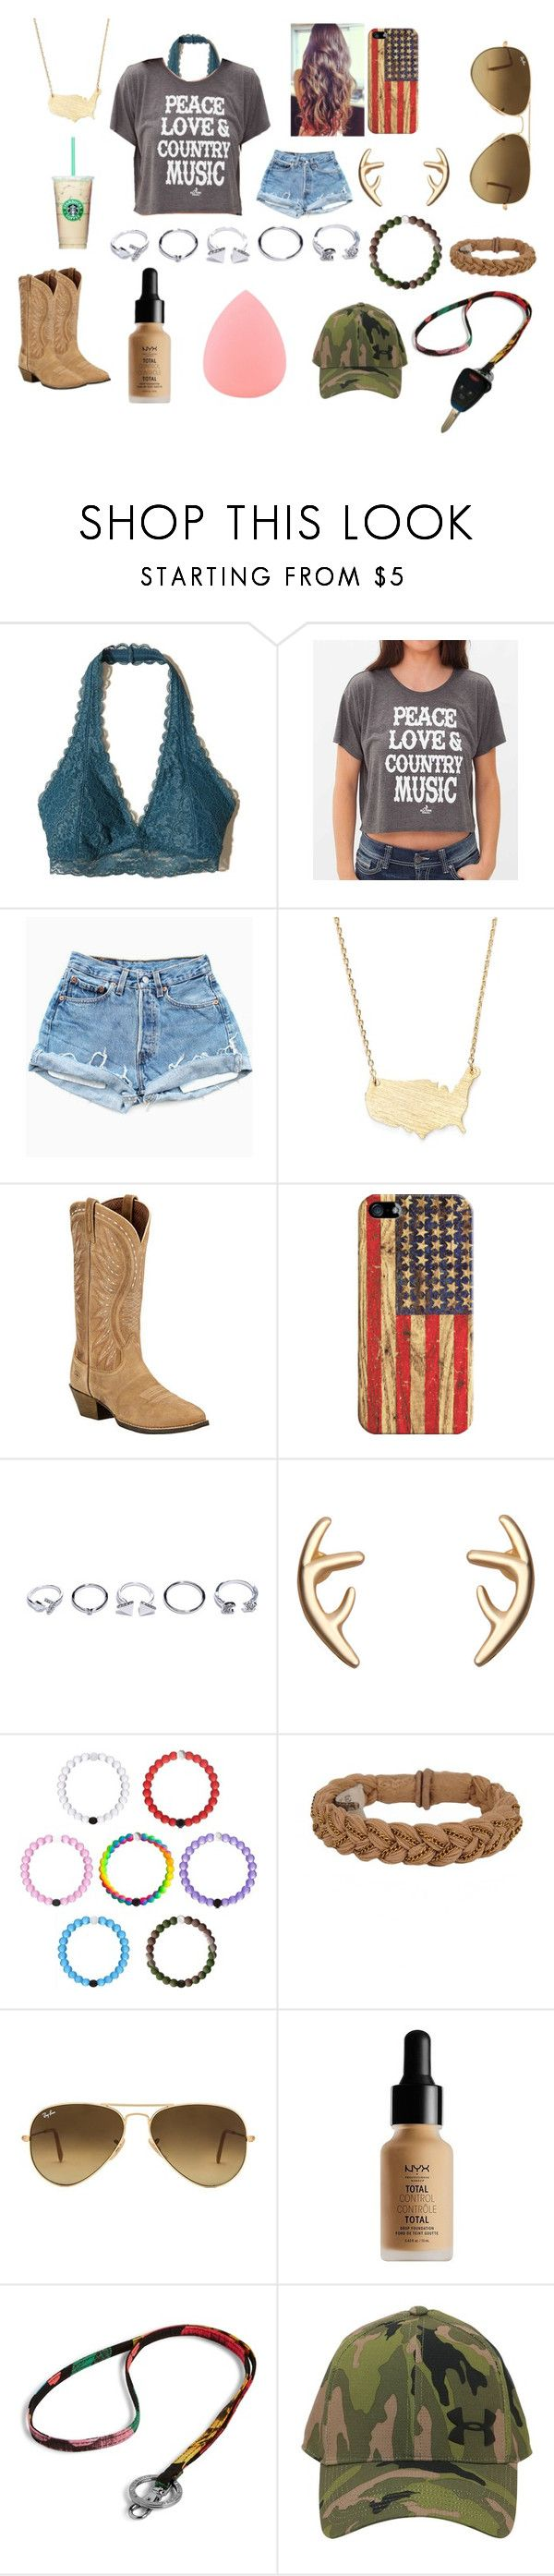 """Untitled #56"" by ajgswim on Polyvore featuring Hollister Co., Ali Dee Collection, Moon and Lola, Ariat, Casetify, GUESS, Roarke, Ray-Ban, NYX and Vera Bradley"